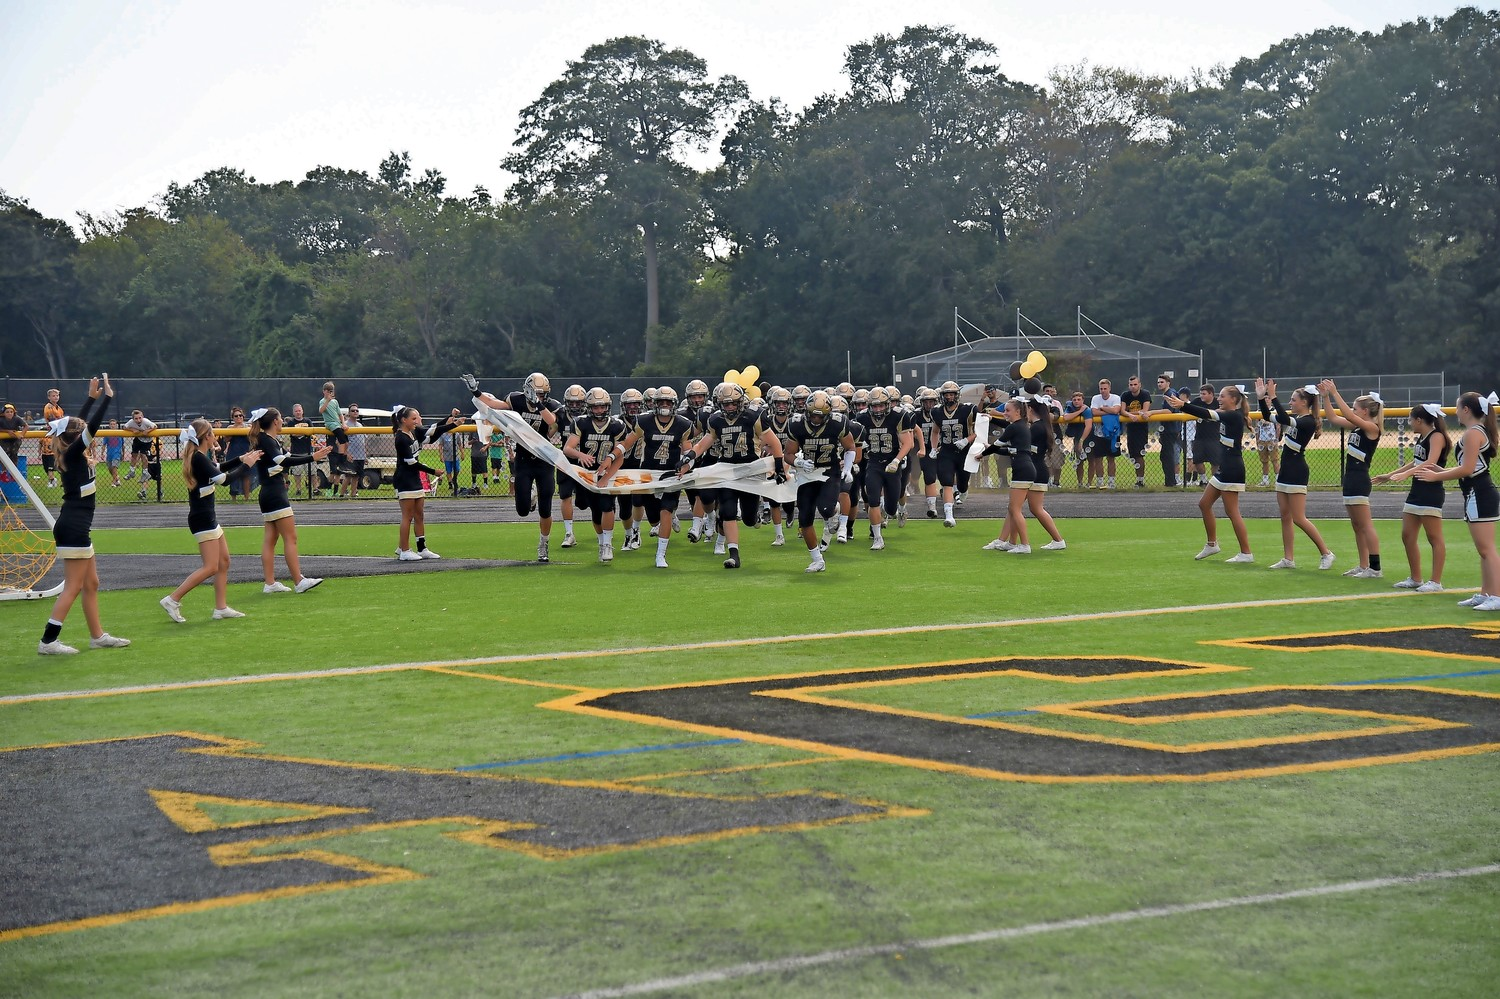 The Wantagh High School football team charged onto the field before the Homecoming game on Sept. 16.